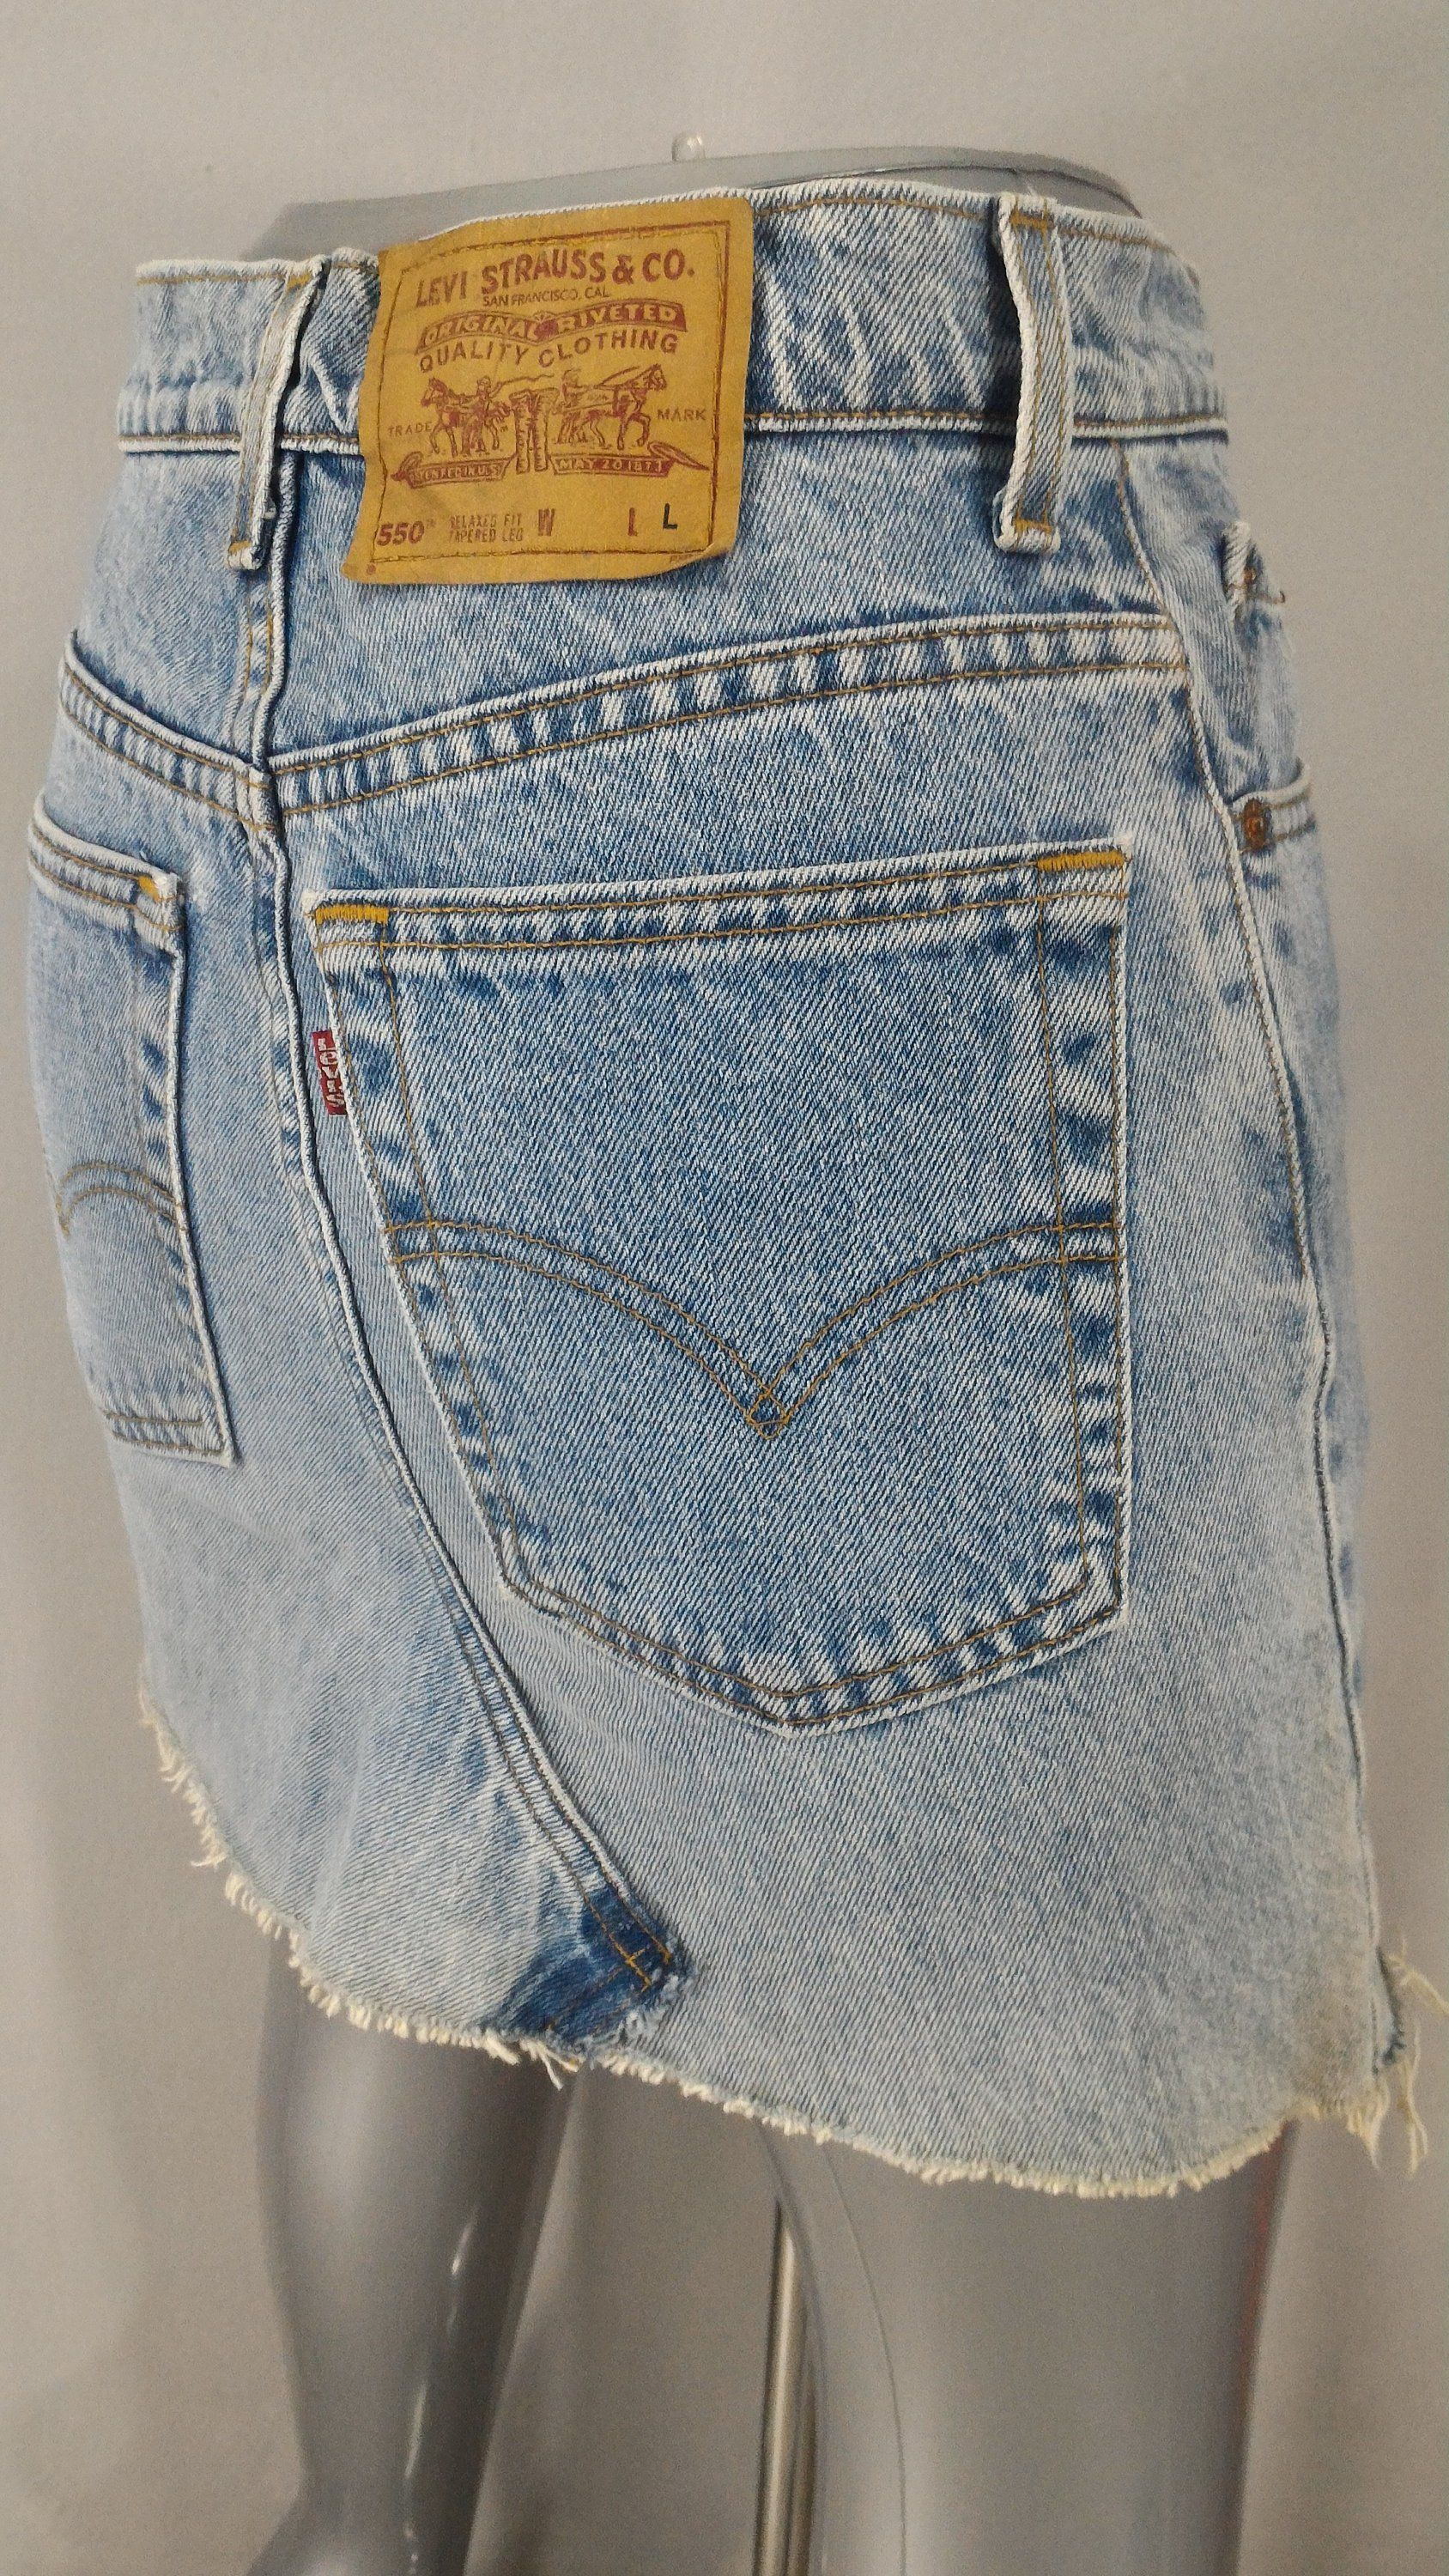 6d6a99a935ef0c Sz 28 Vintage Levis 550 Mini Skirt Jeans Custom Distressed Cut Off Denim  Made In USA